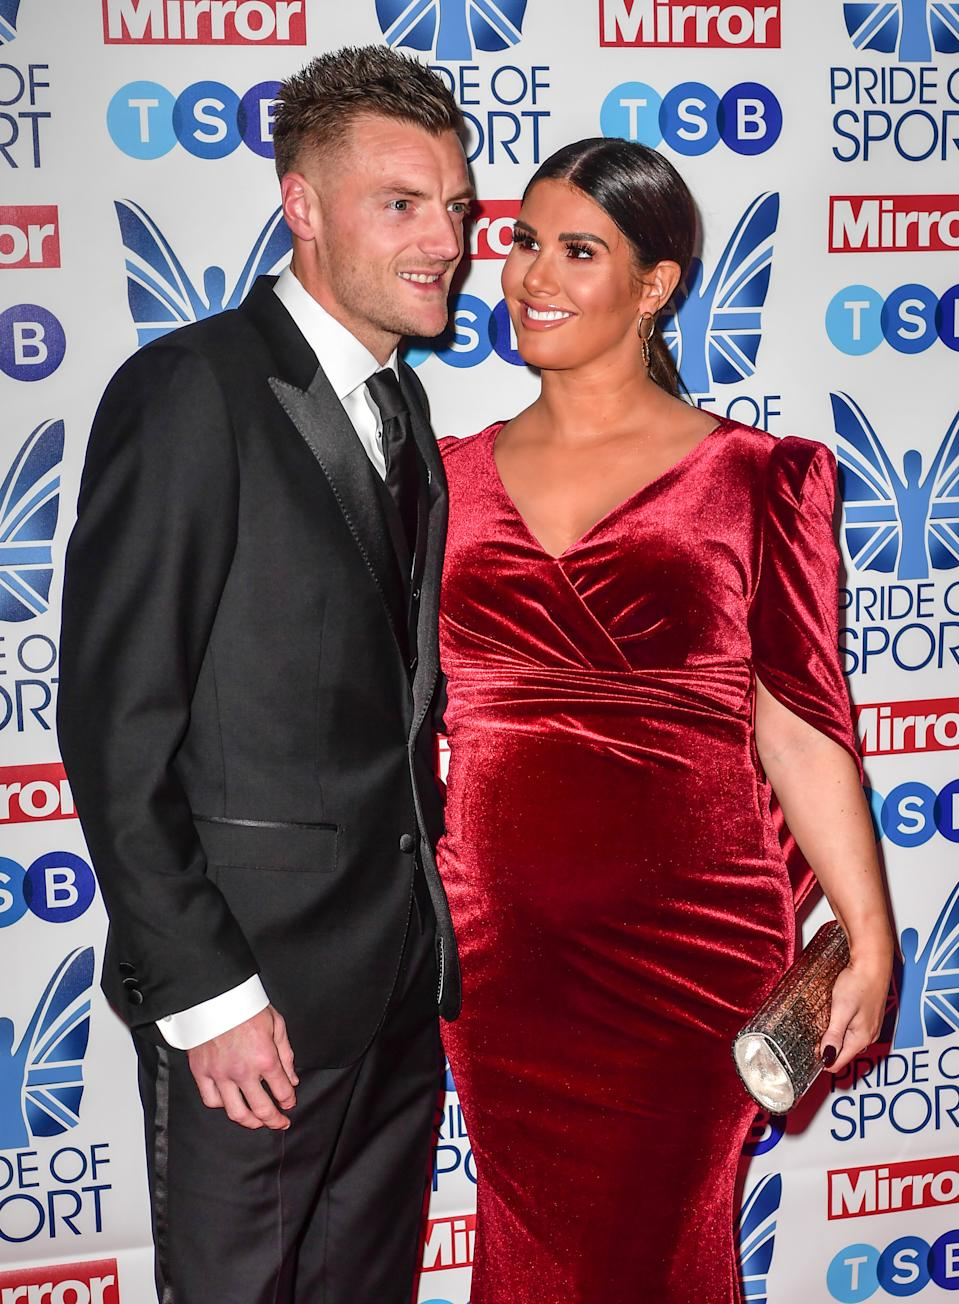 LONDON- DECEMBER 05: Jamie Vardy & Rebekah Vardy attend The  Pride of Sport Awards, on December 05 2019, at The Grosvenor House Hotel ,London, England. (Photo by MelMedia/Getty Images)